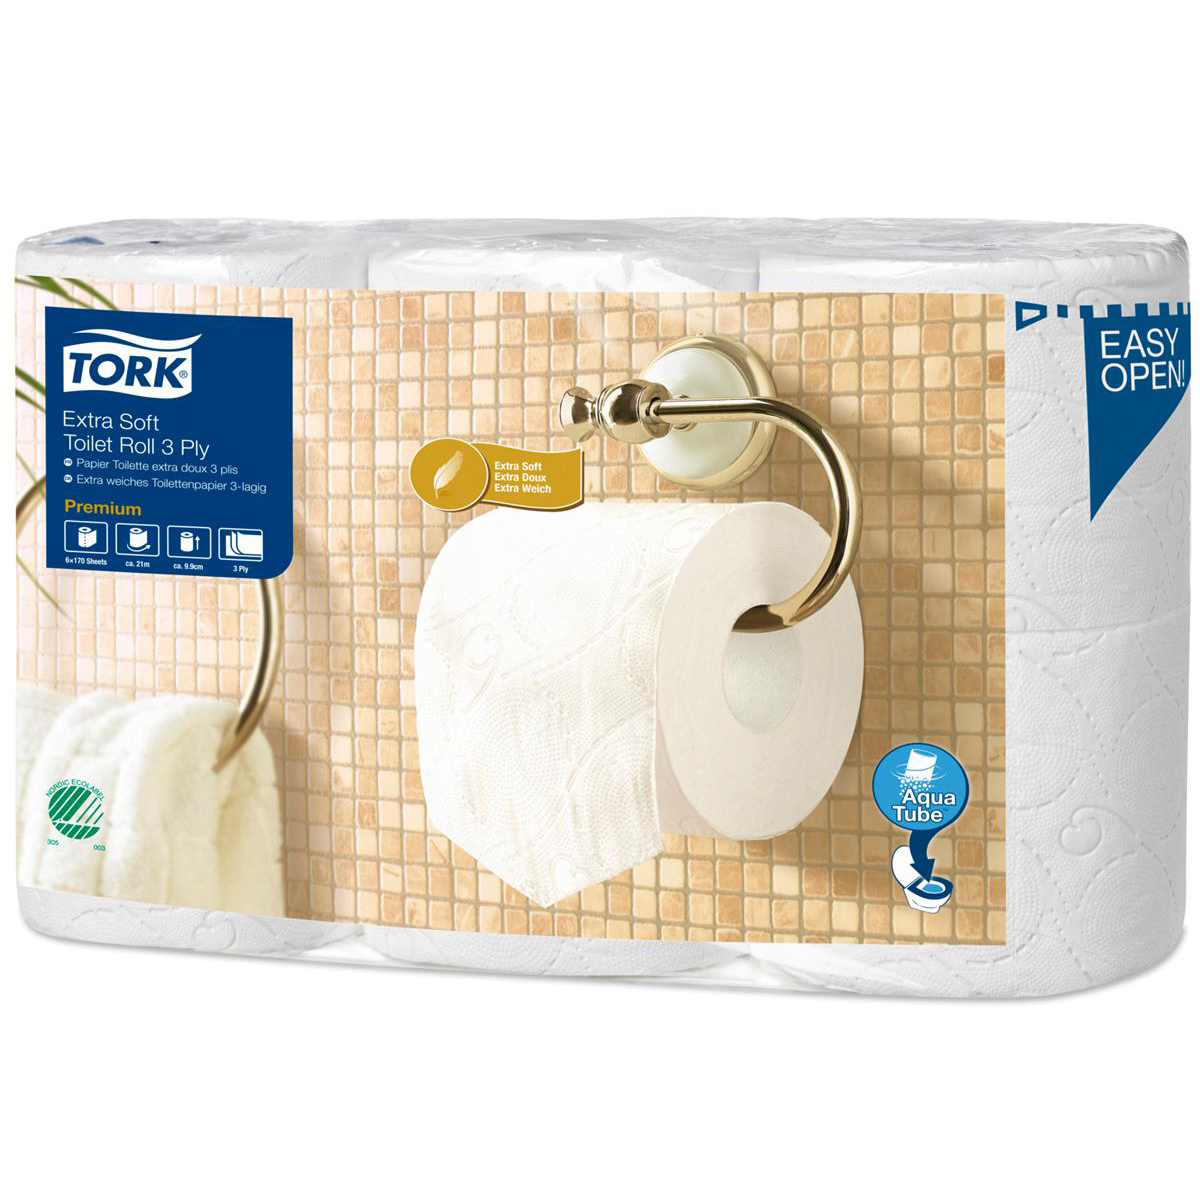 Toilet tissue Tork Extra Soft Premium Toilet Roll 3-ply Embossed 99x125mm 170 Sheets White Ref 110318 [Pack 6]